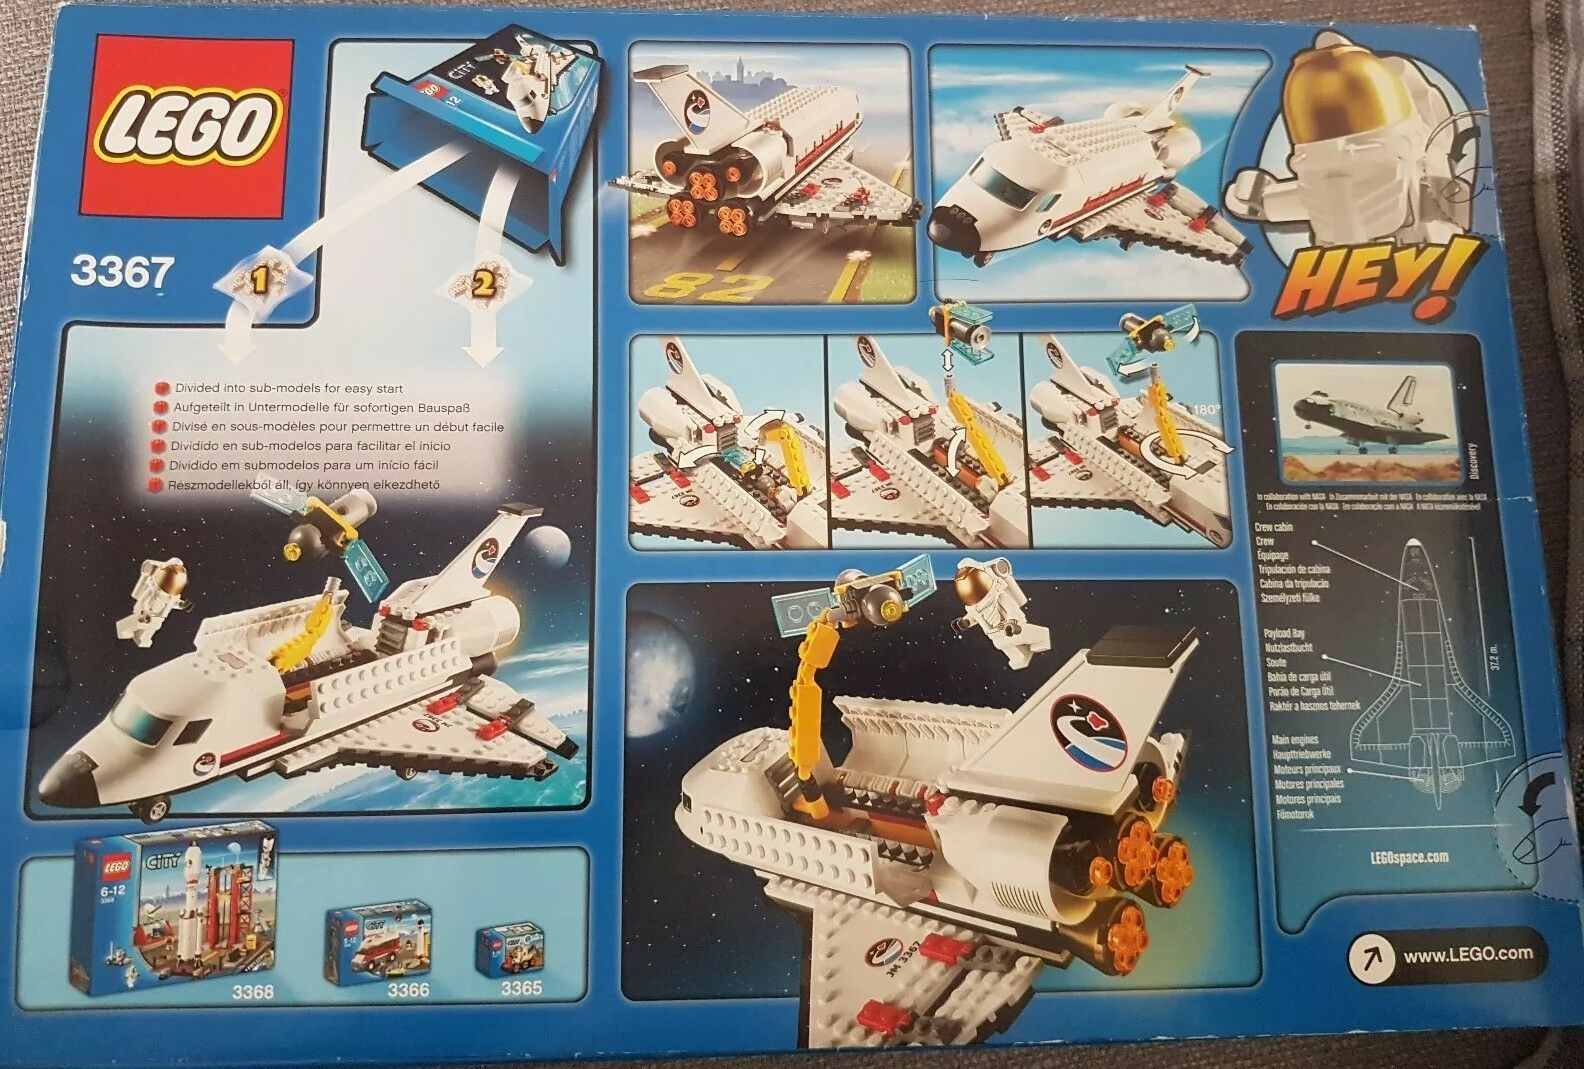 LEGO Space Shuttle 3367 New - discontinued